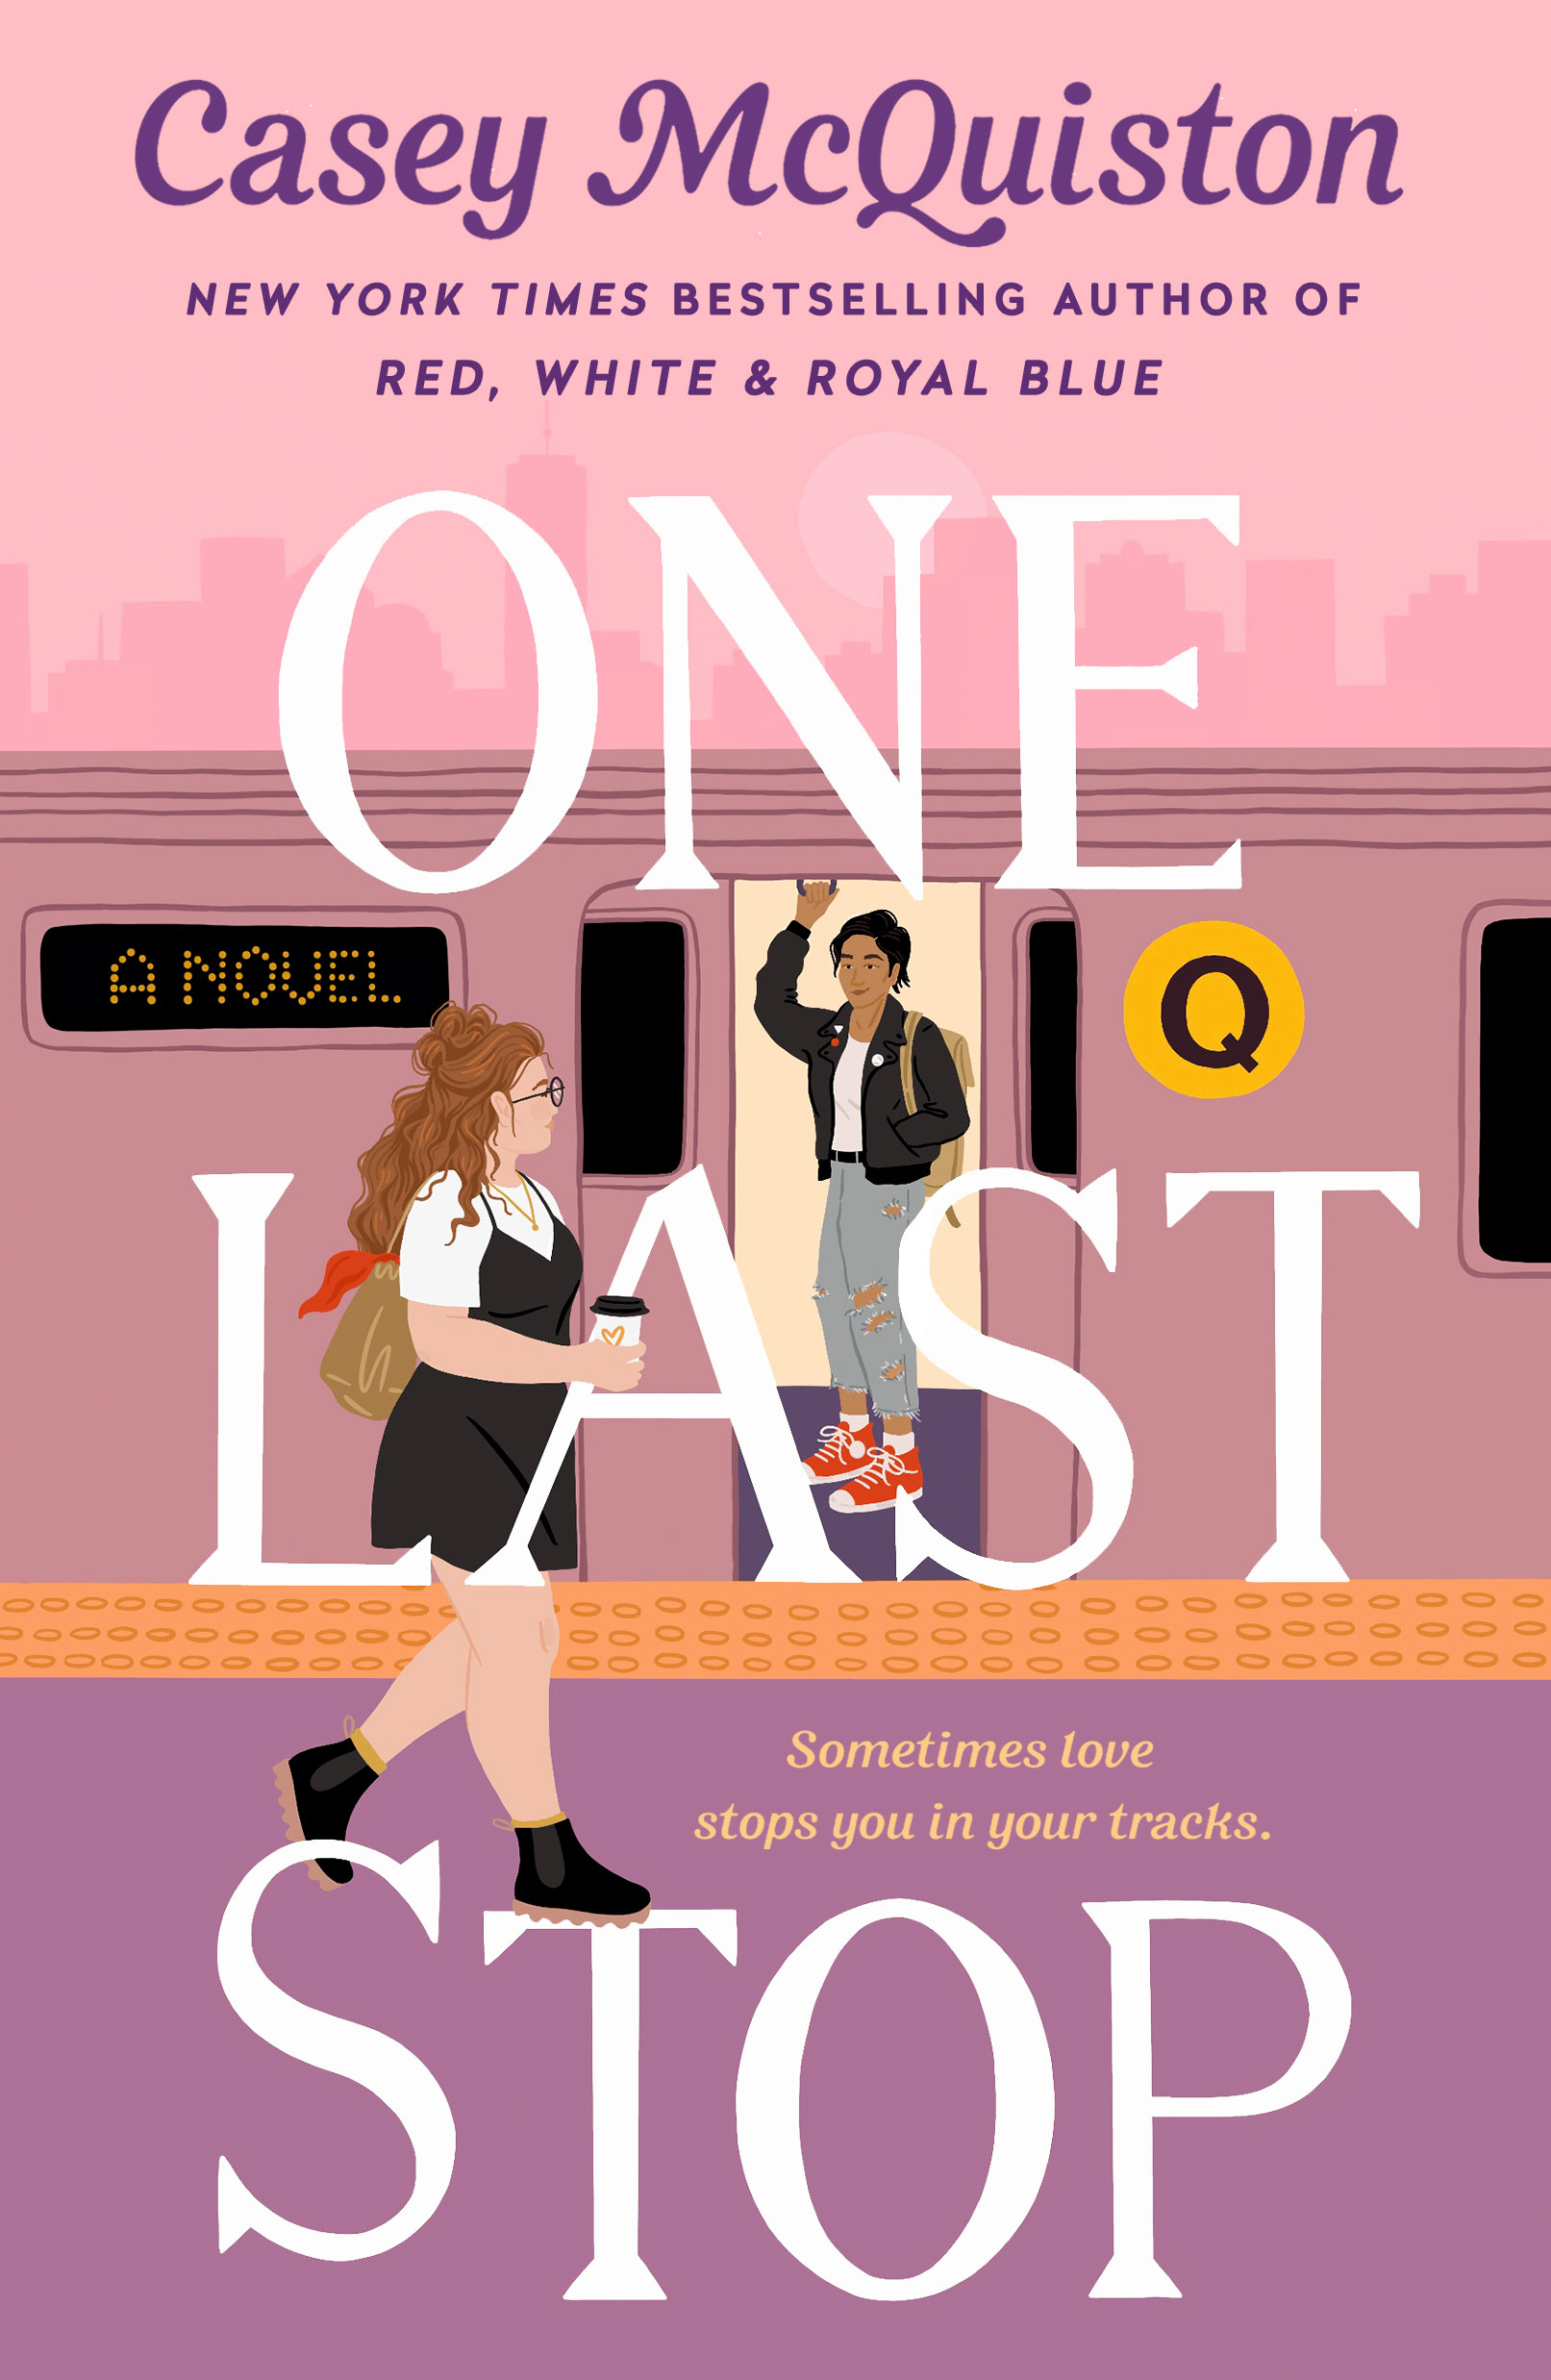 Photo of the cover for One Last Stop by Casey McQuiston